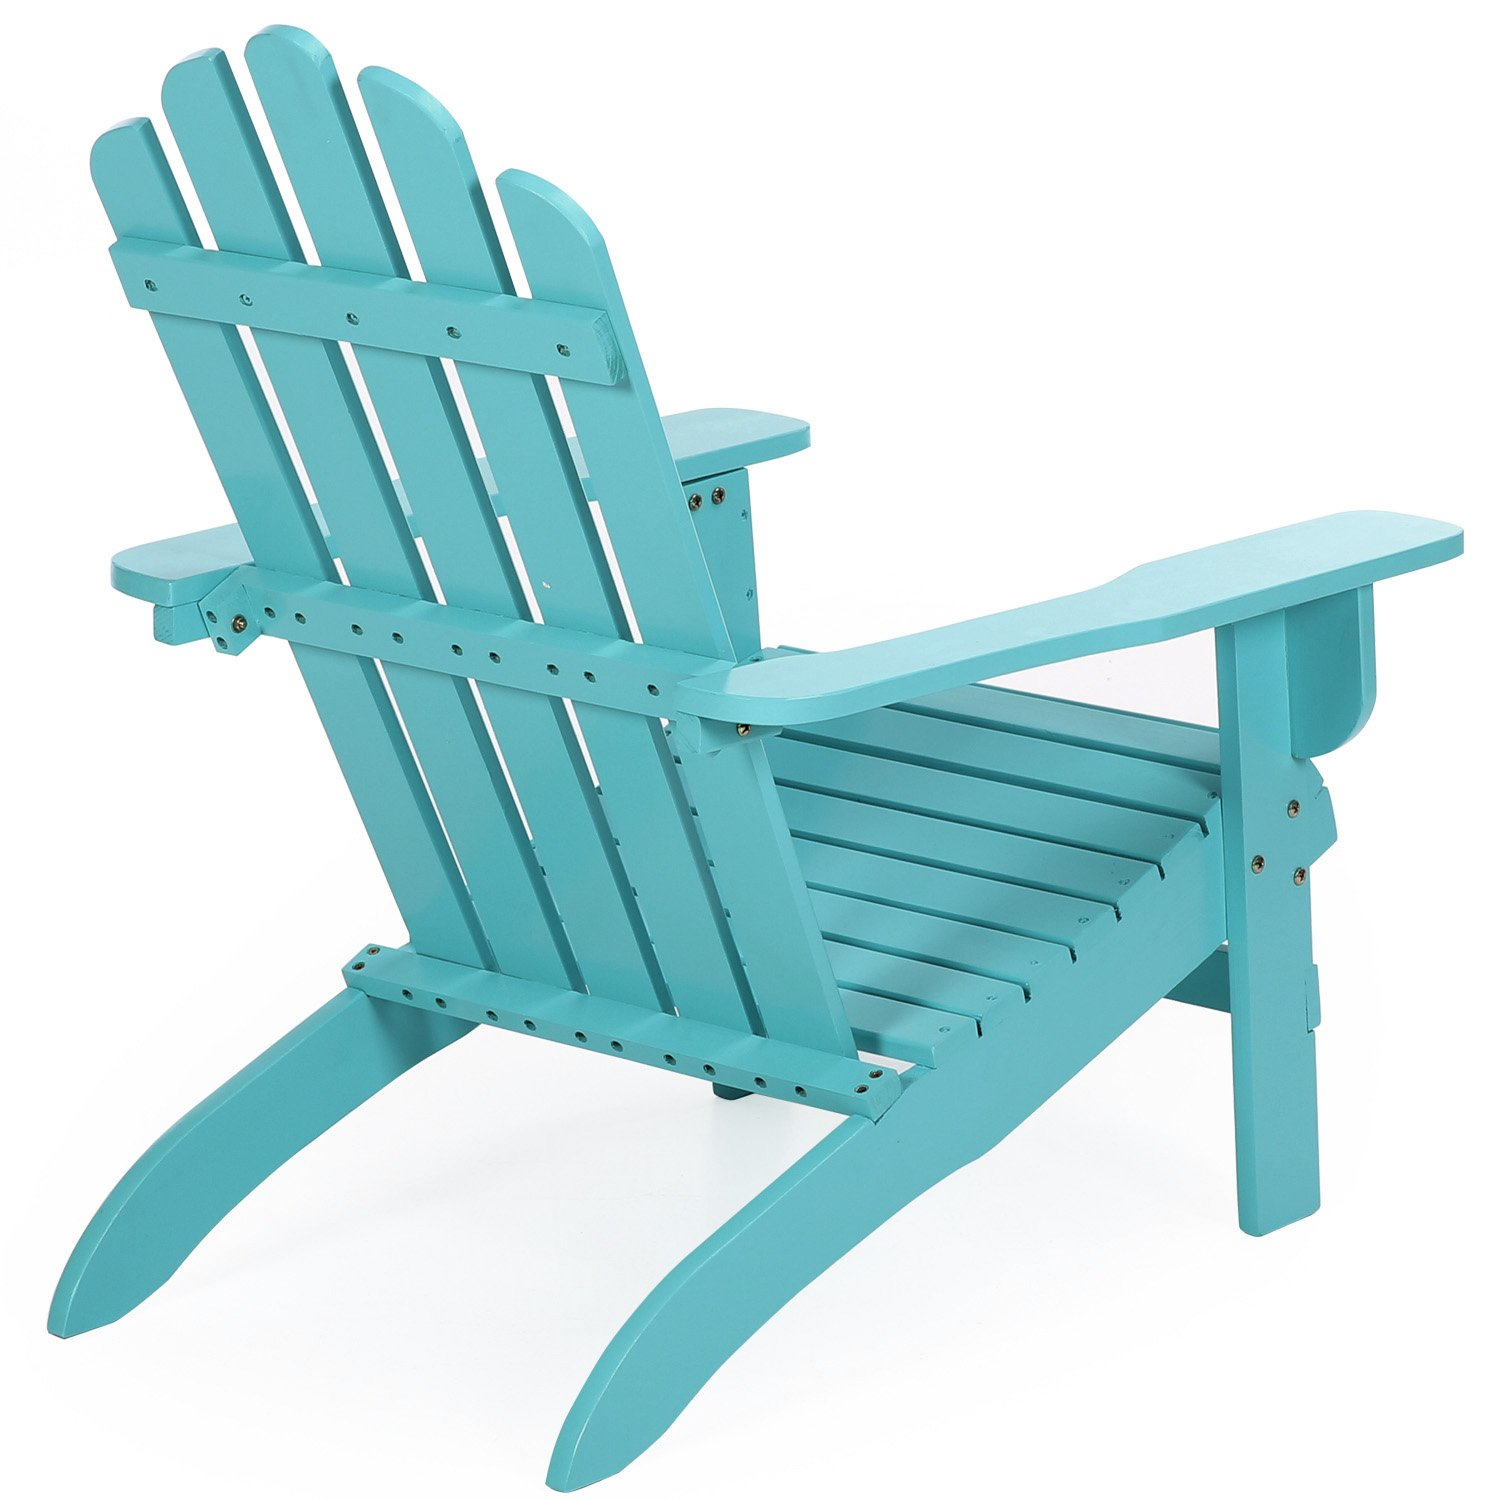 Azbro Outdoor Wooden Fashion Adirondack chair/Muskoka Chairs Patio Deck Garden Furniture,Turquoise by Azbro (Image #3)